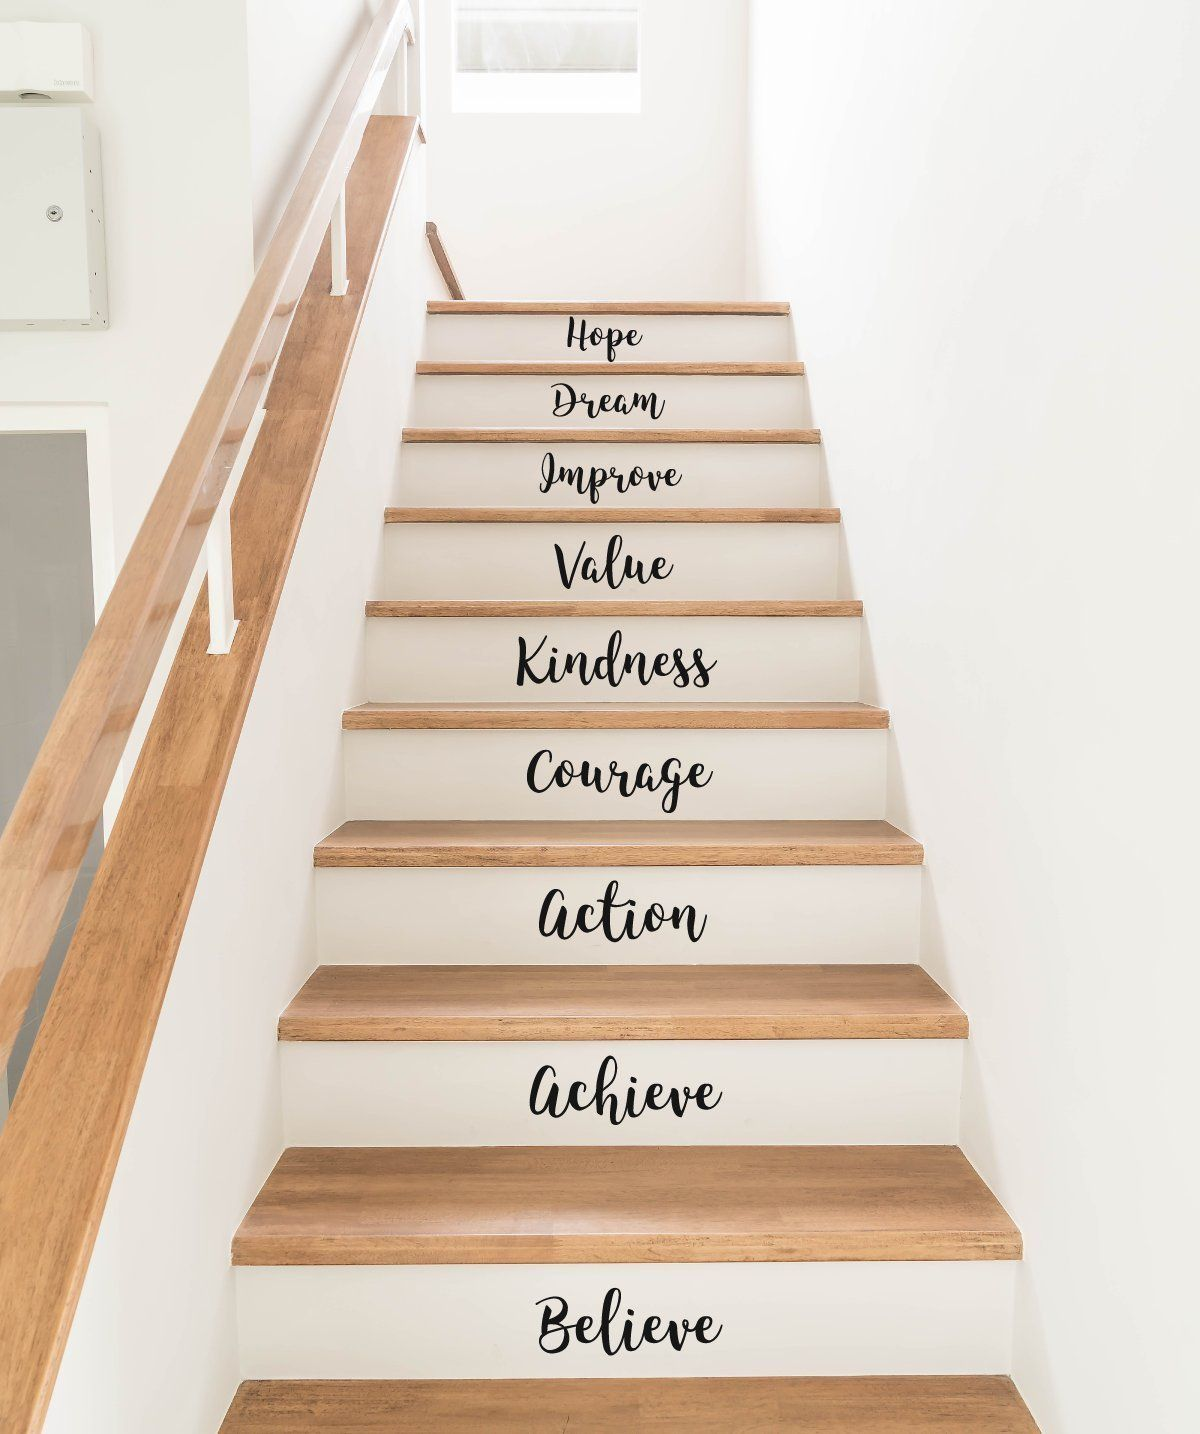 Stair riser wall decals stickers motivational quotes inspiration art decor home stairway words 36 colours available handmade